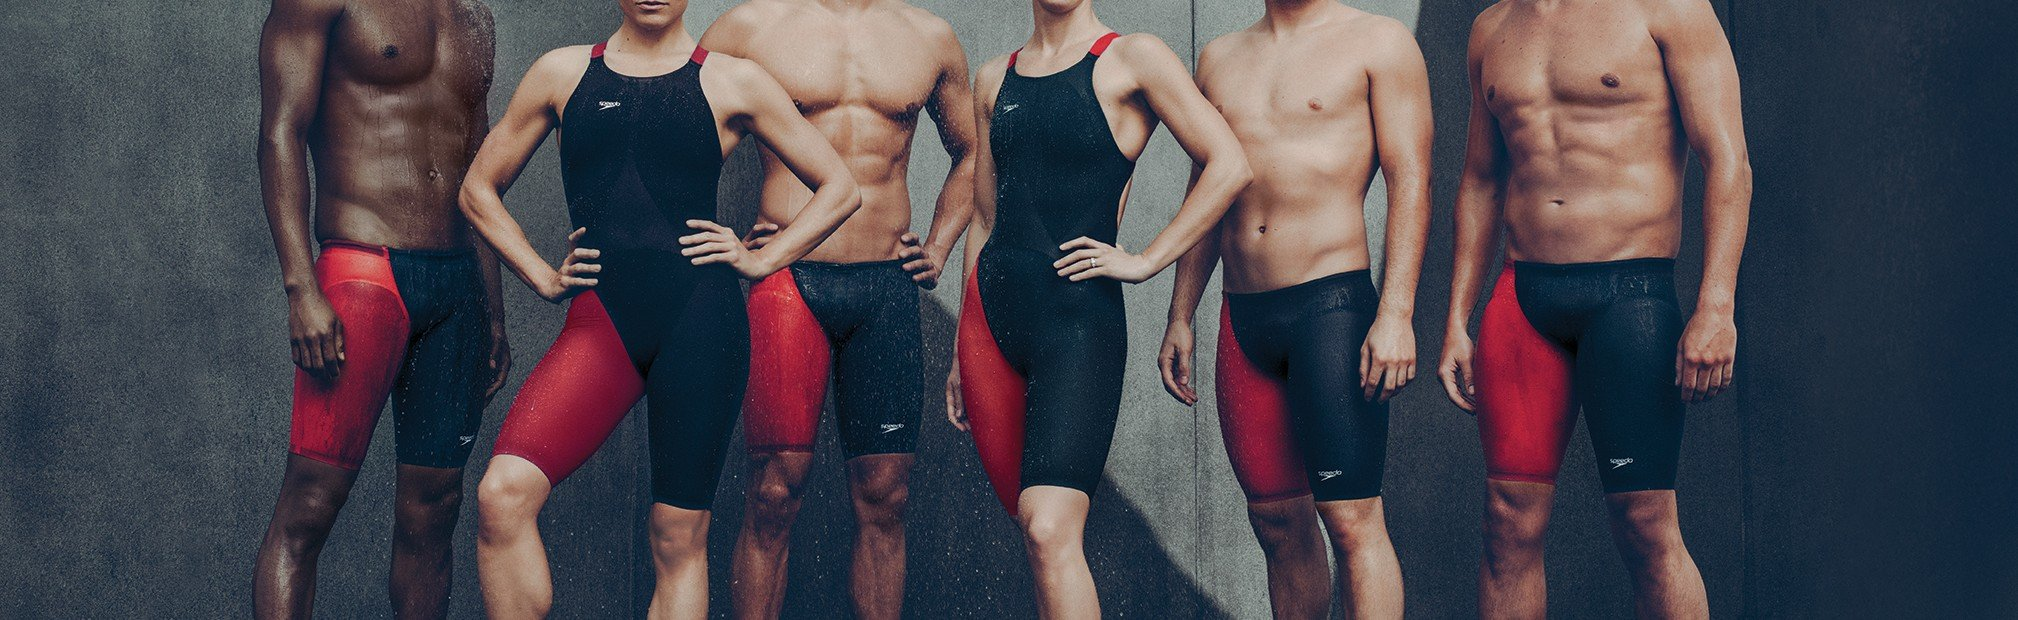 Professional Athletes wearing high performance technical racing suits